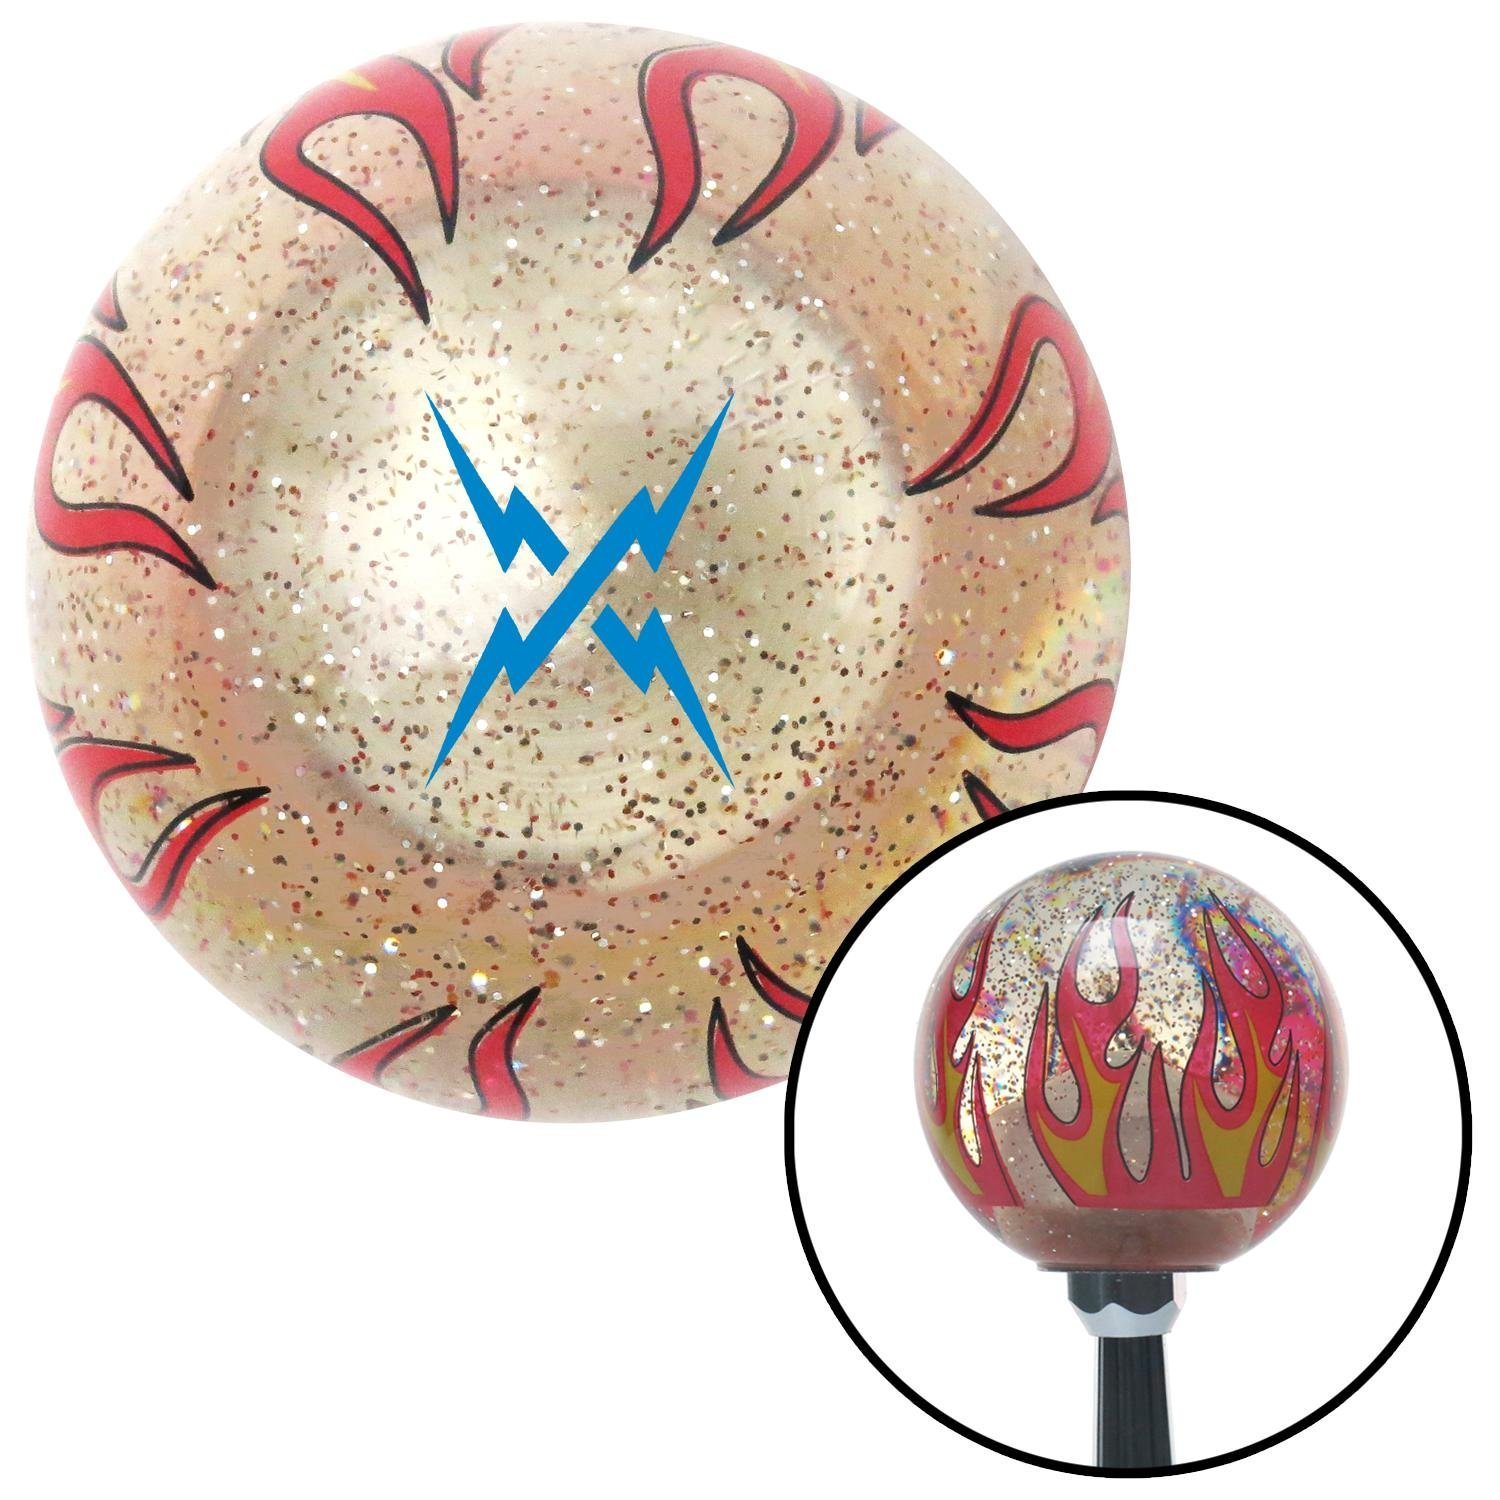 American Shifter 295878 Shift Knob Blue Lightning Crossed Clear Flame Metal Flake with M16 x 1.5 Insert